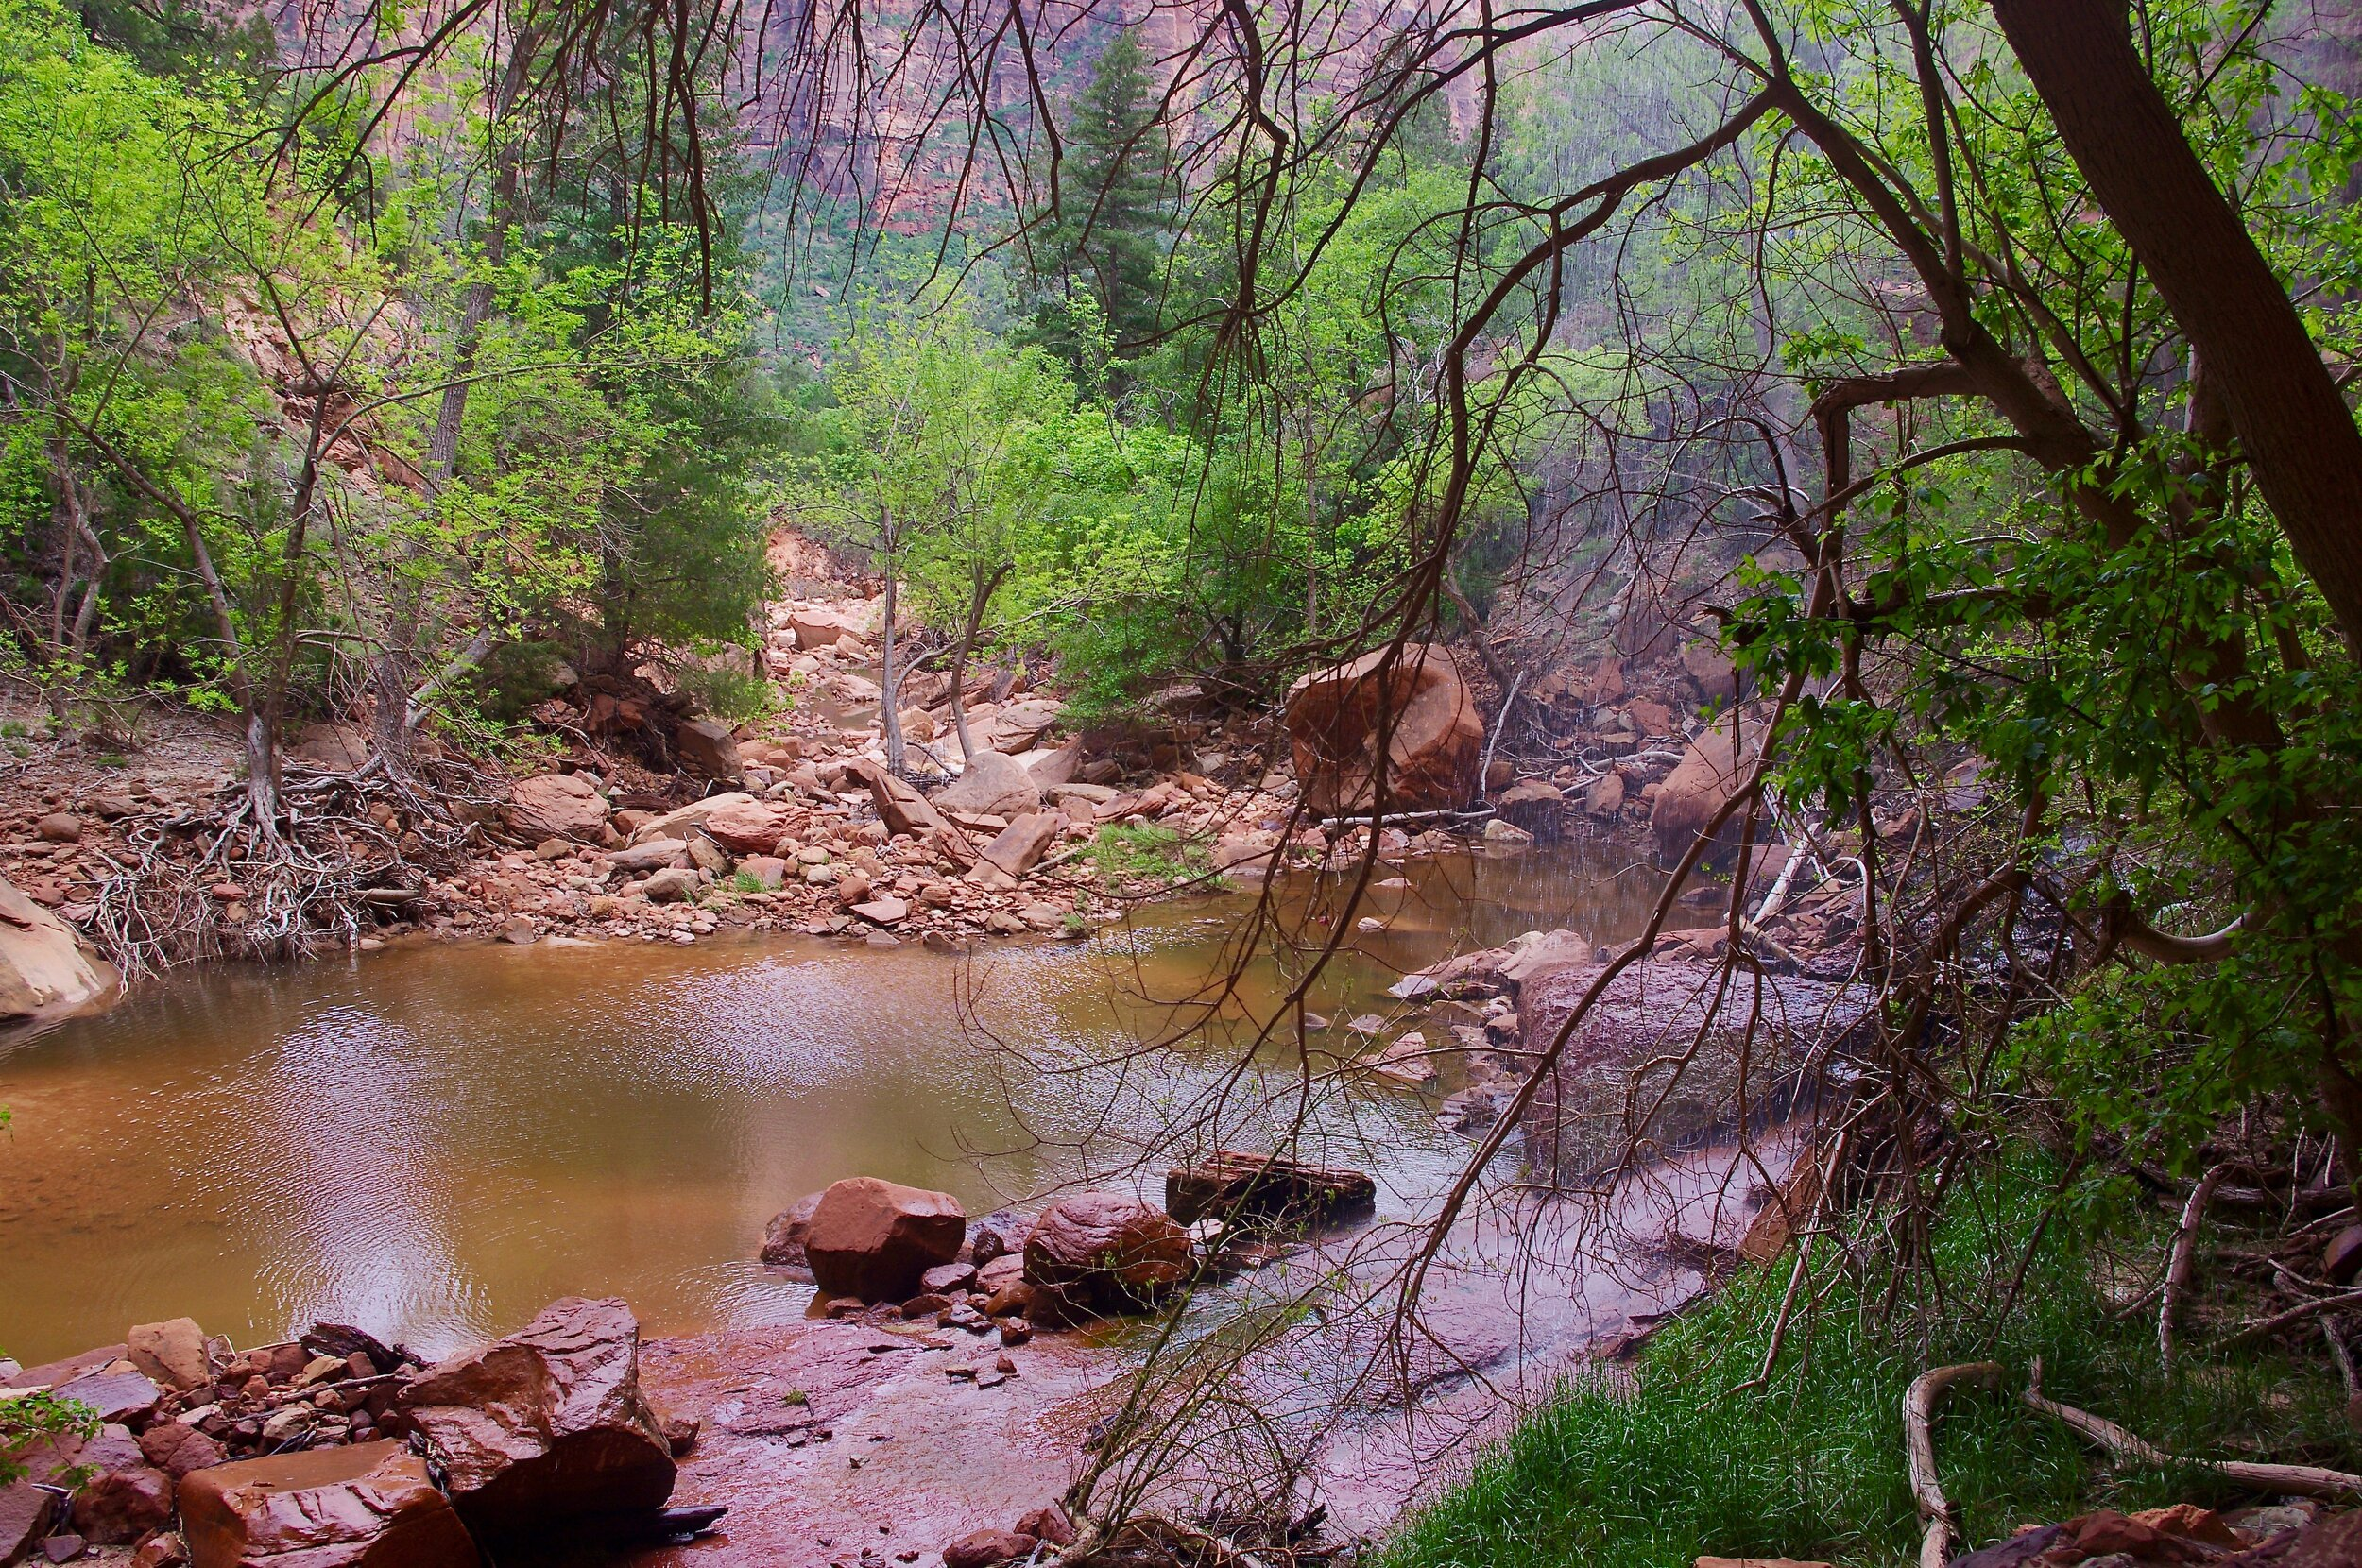 Here is Lower Emerald Pool. The stuff that looks like rain is actually waterfall. There are two of them falling from rocks that loom over the path so you end up walking behind them.